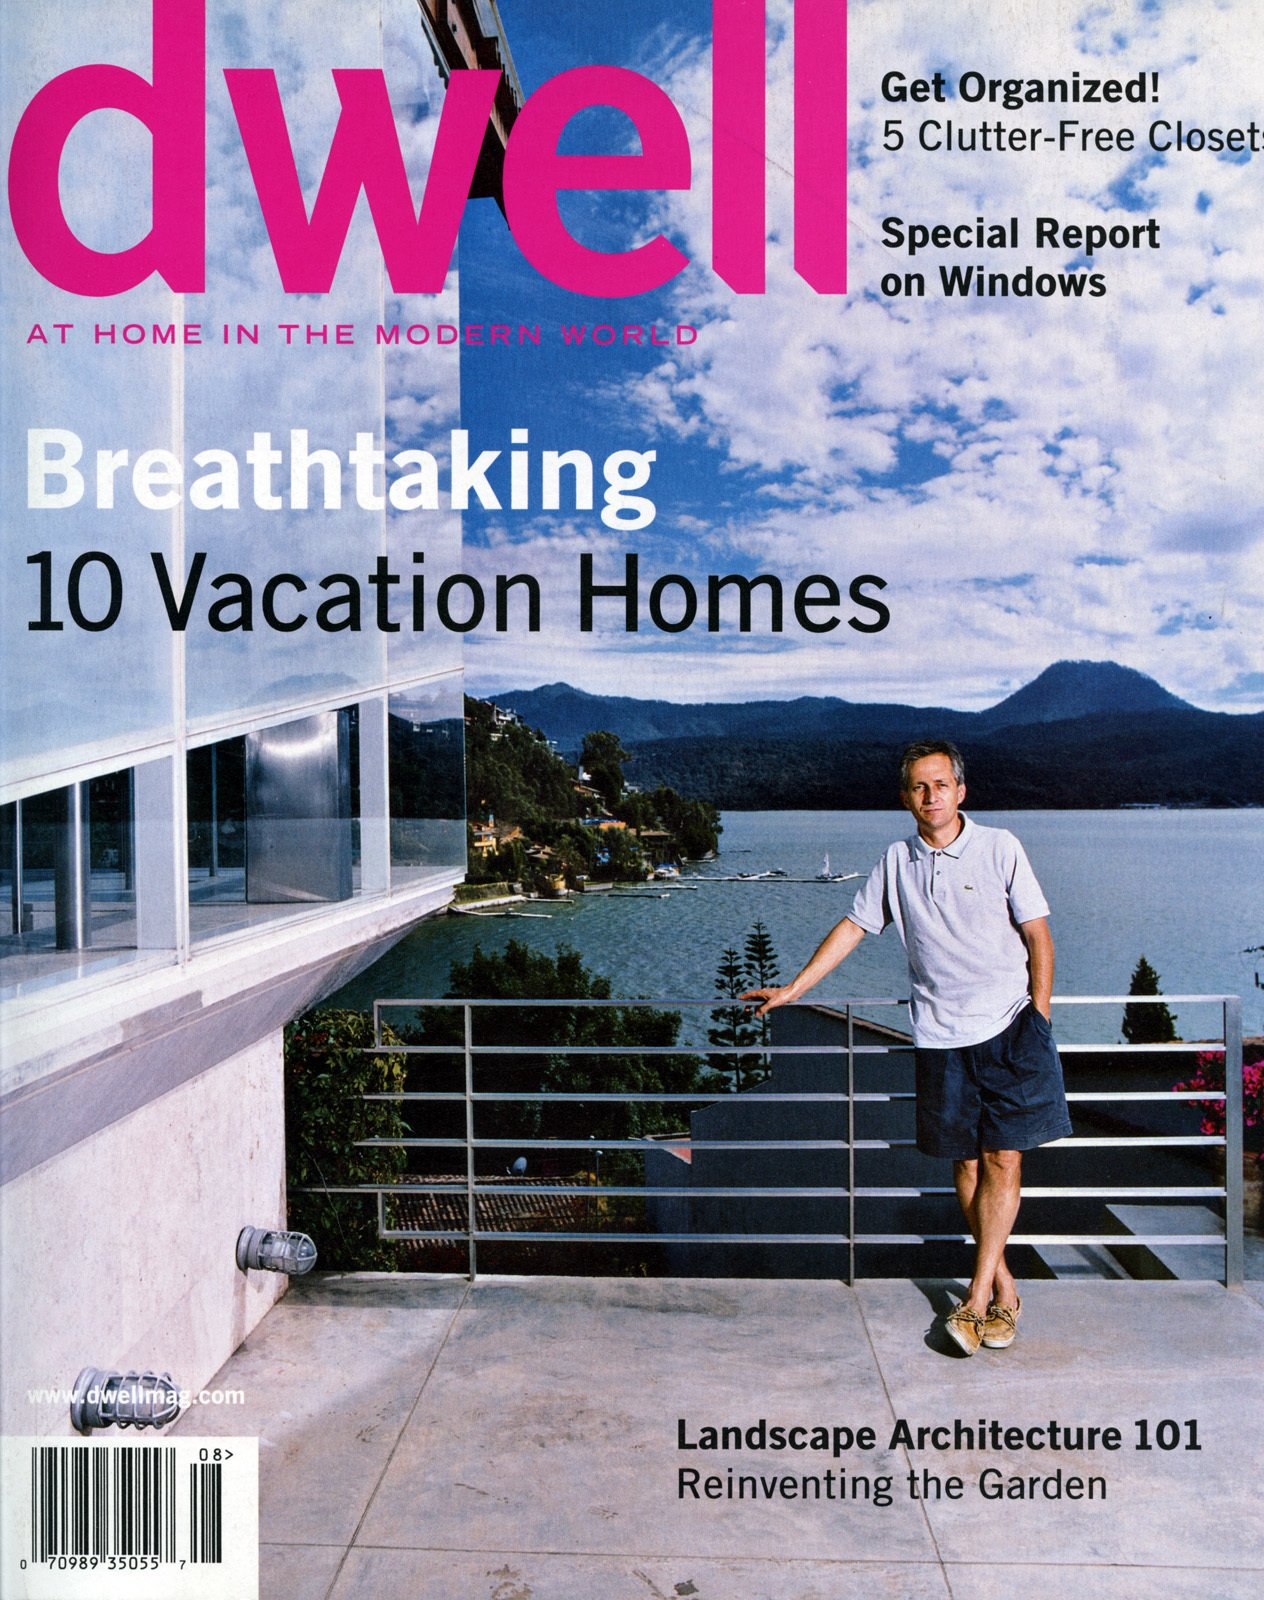 Dwell July/August 2004, Vol. 04 Issue 07: Breathtaking by Dwell